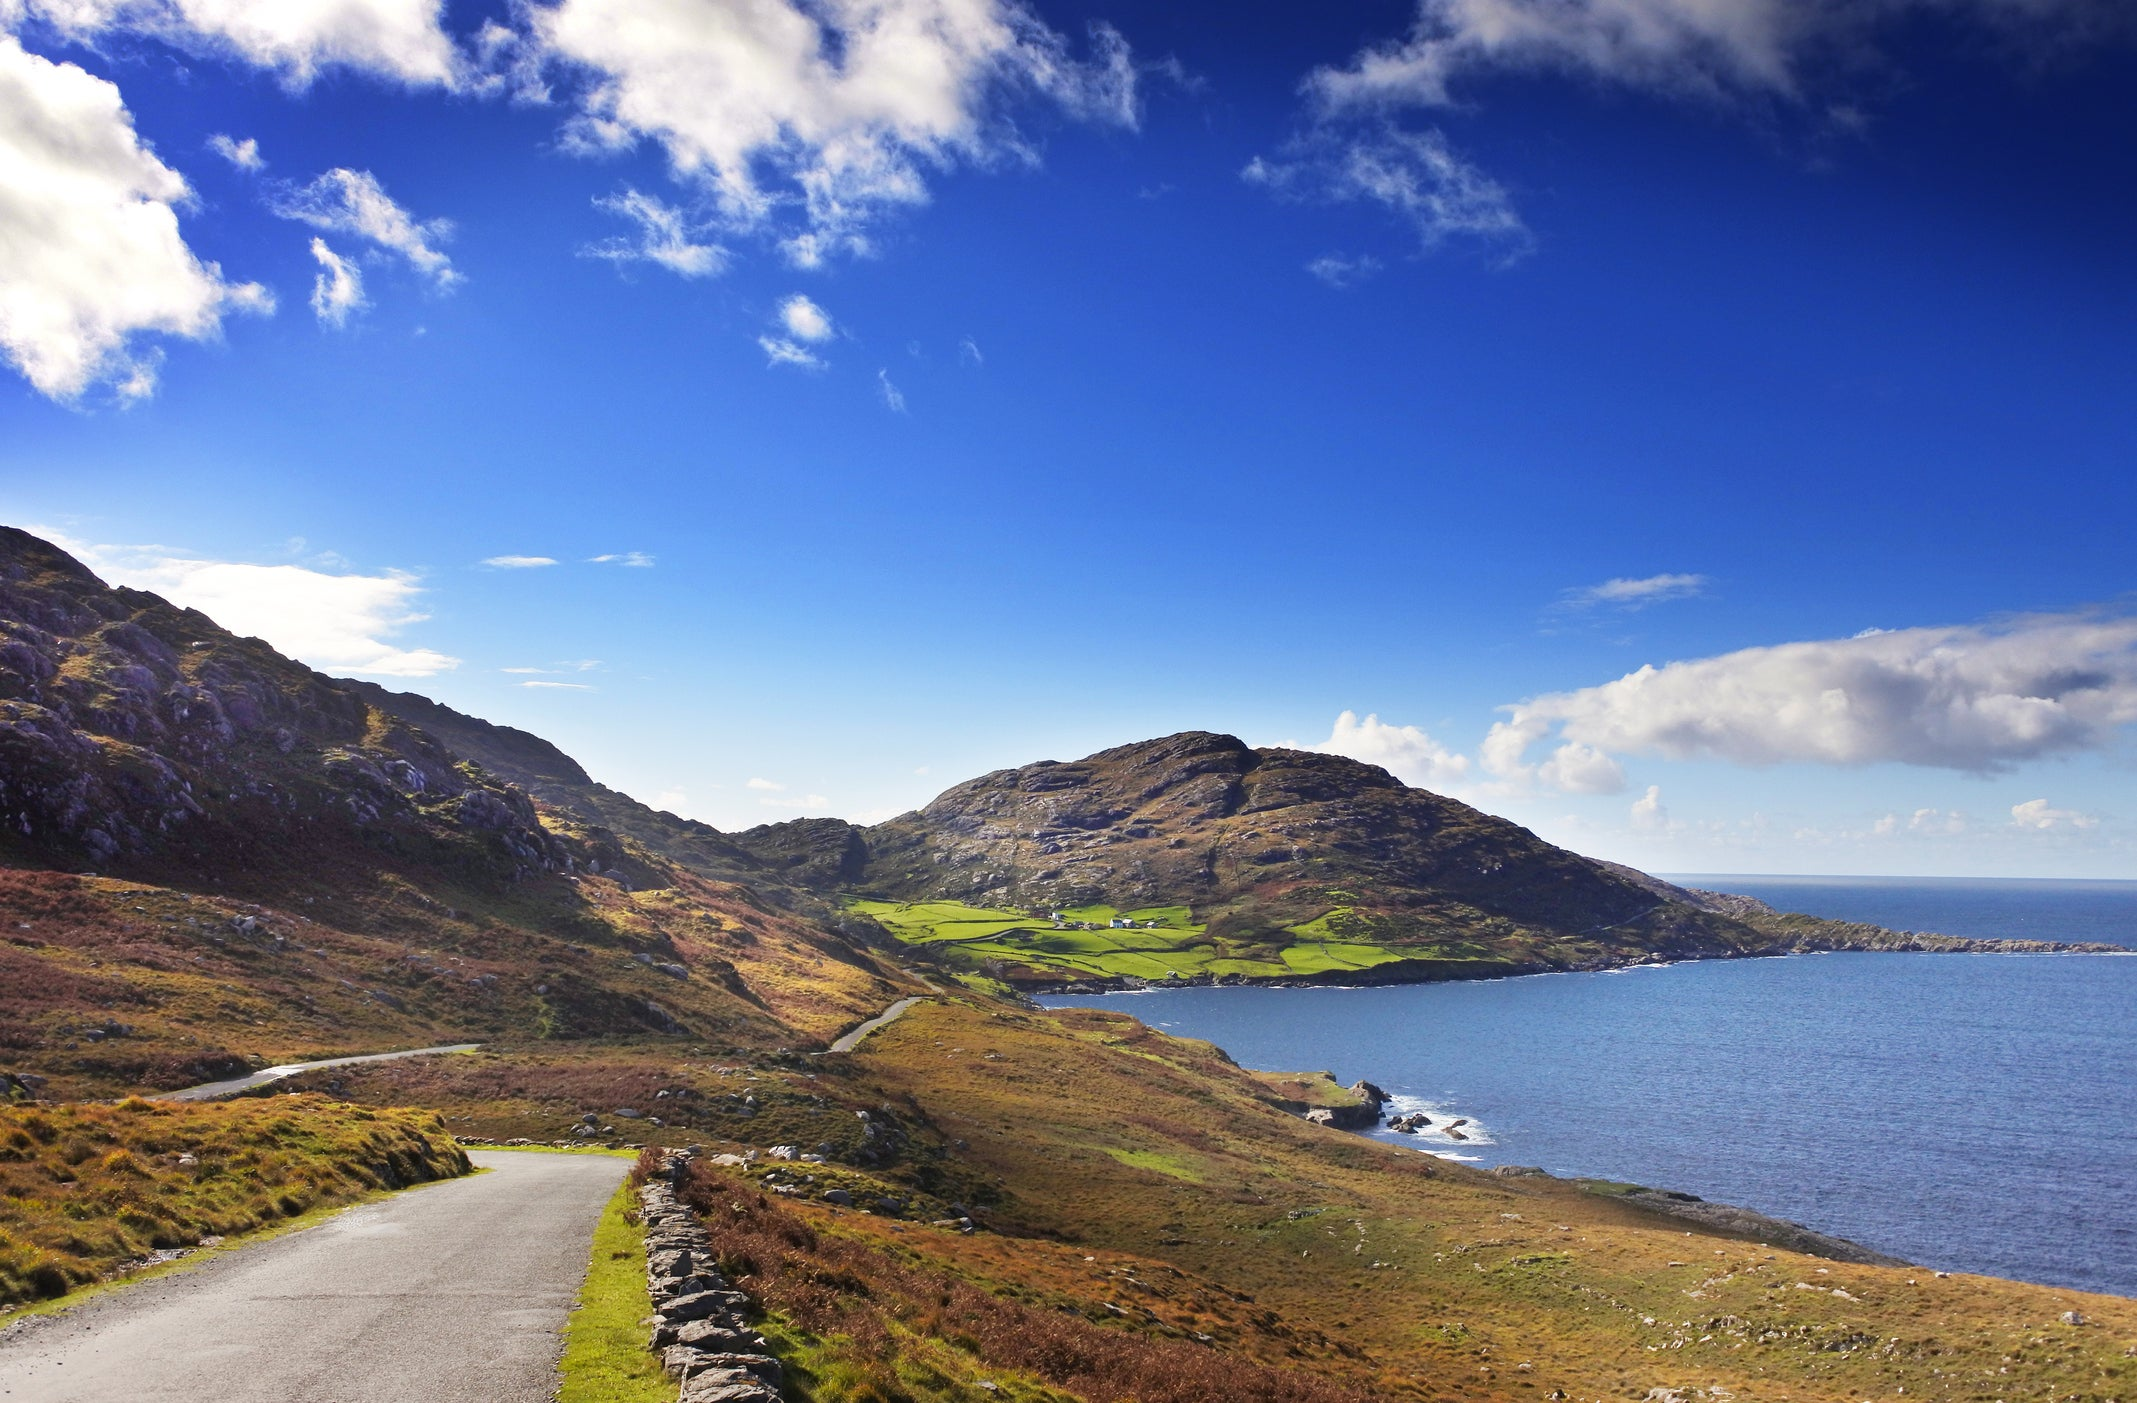 'How a once-in-a-lifetime trip to Ireland transformed my understanding of who I am'